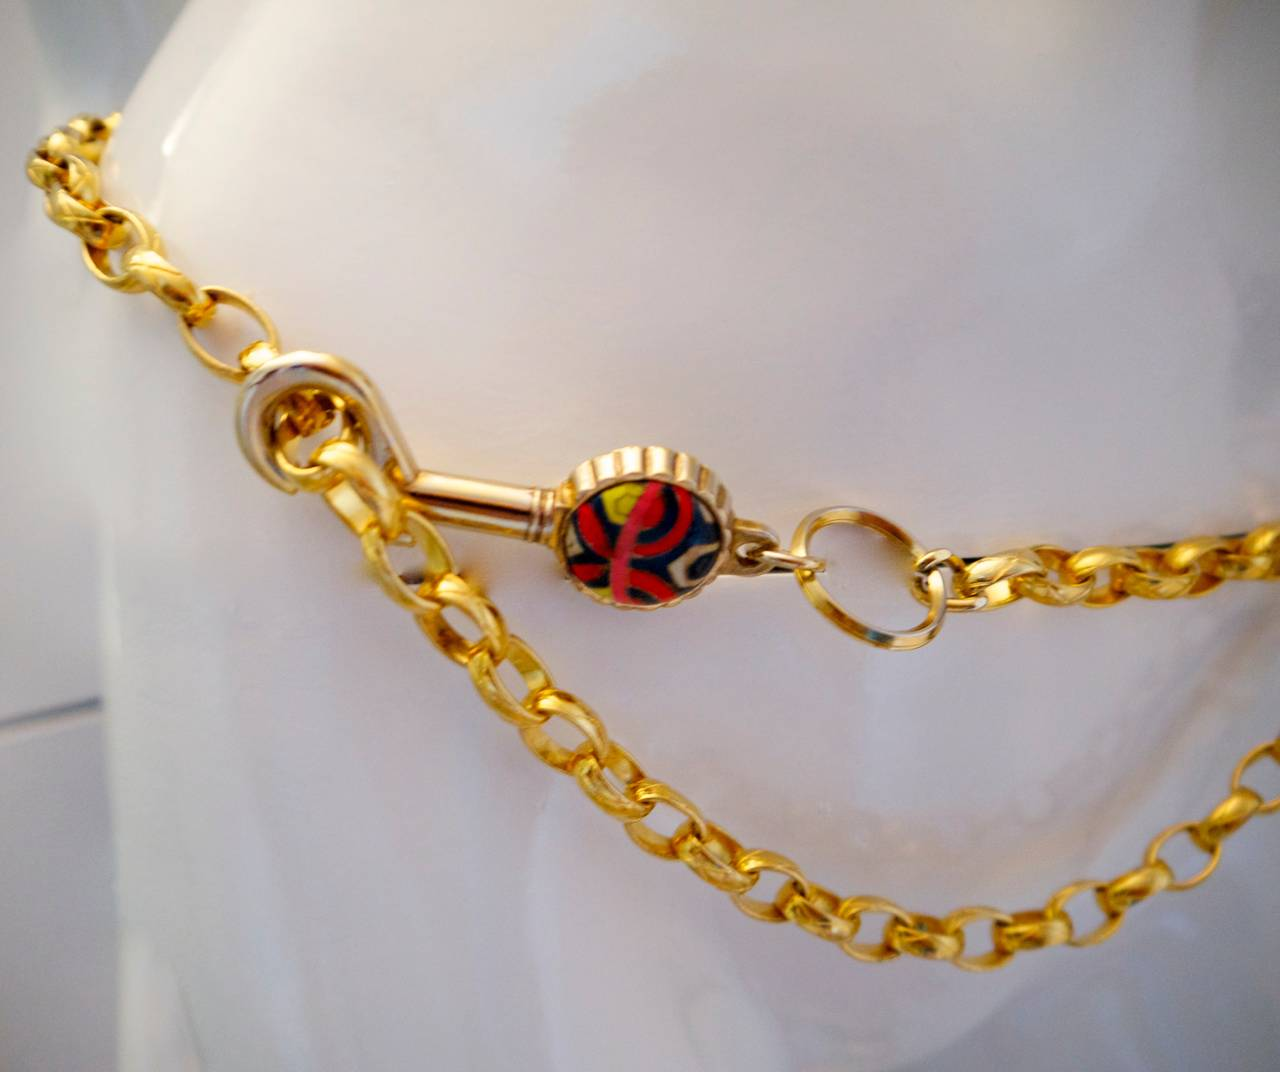 Vintage Chanel Gold Tone Belt / Necklace - Lock and Key - Rare In Excellent Condition For Sale In Boca Raton, FL